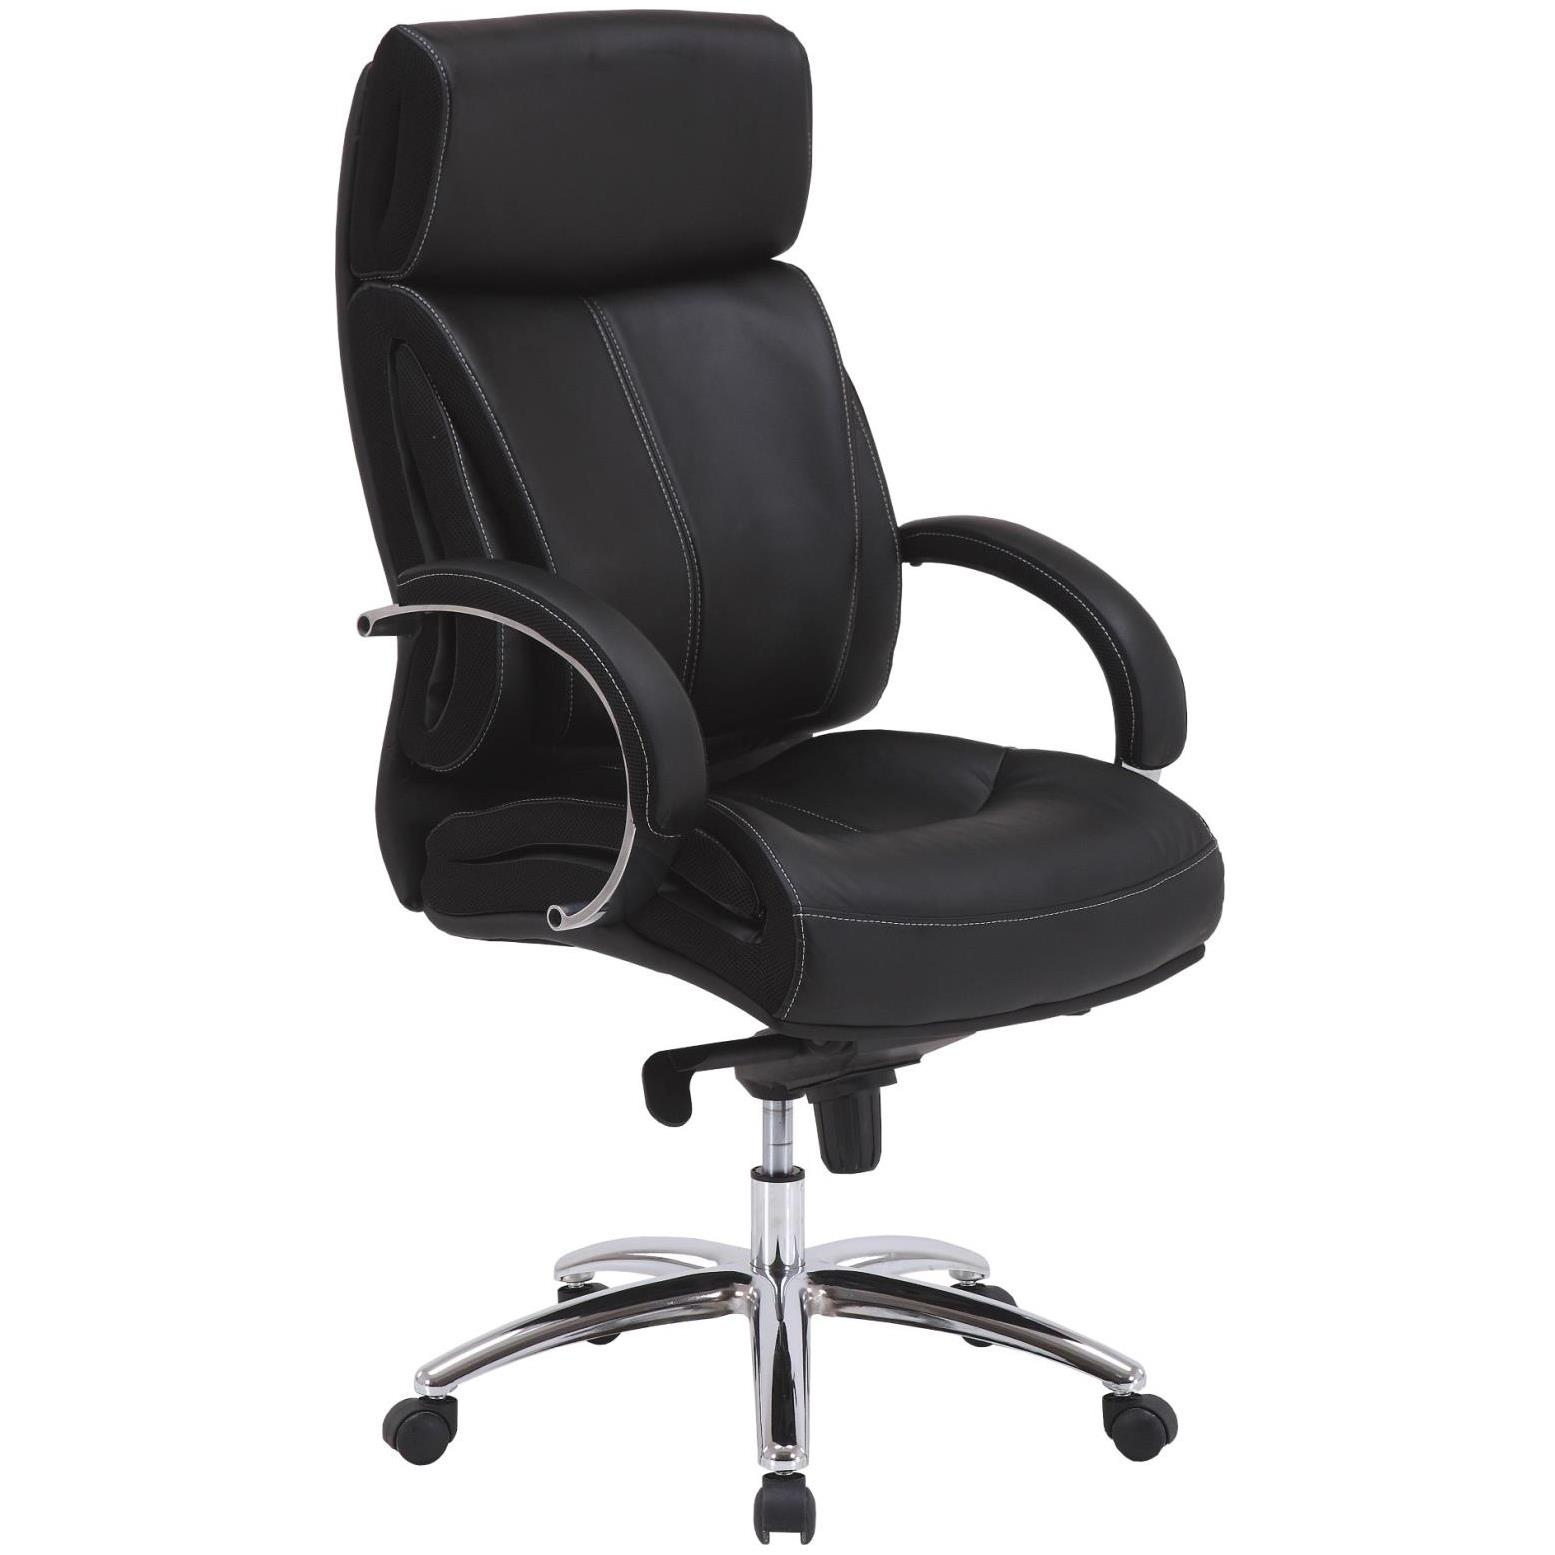 Parker Living Desk Chairs Desk Chair - Item Number: DC-202-EB